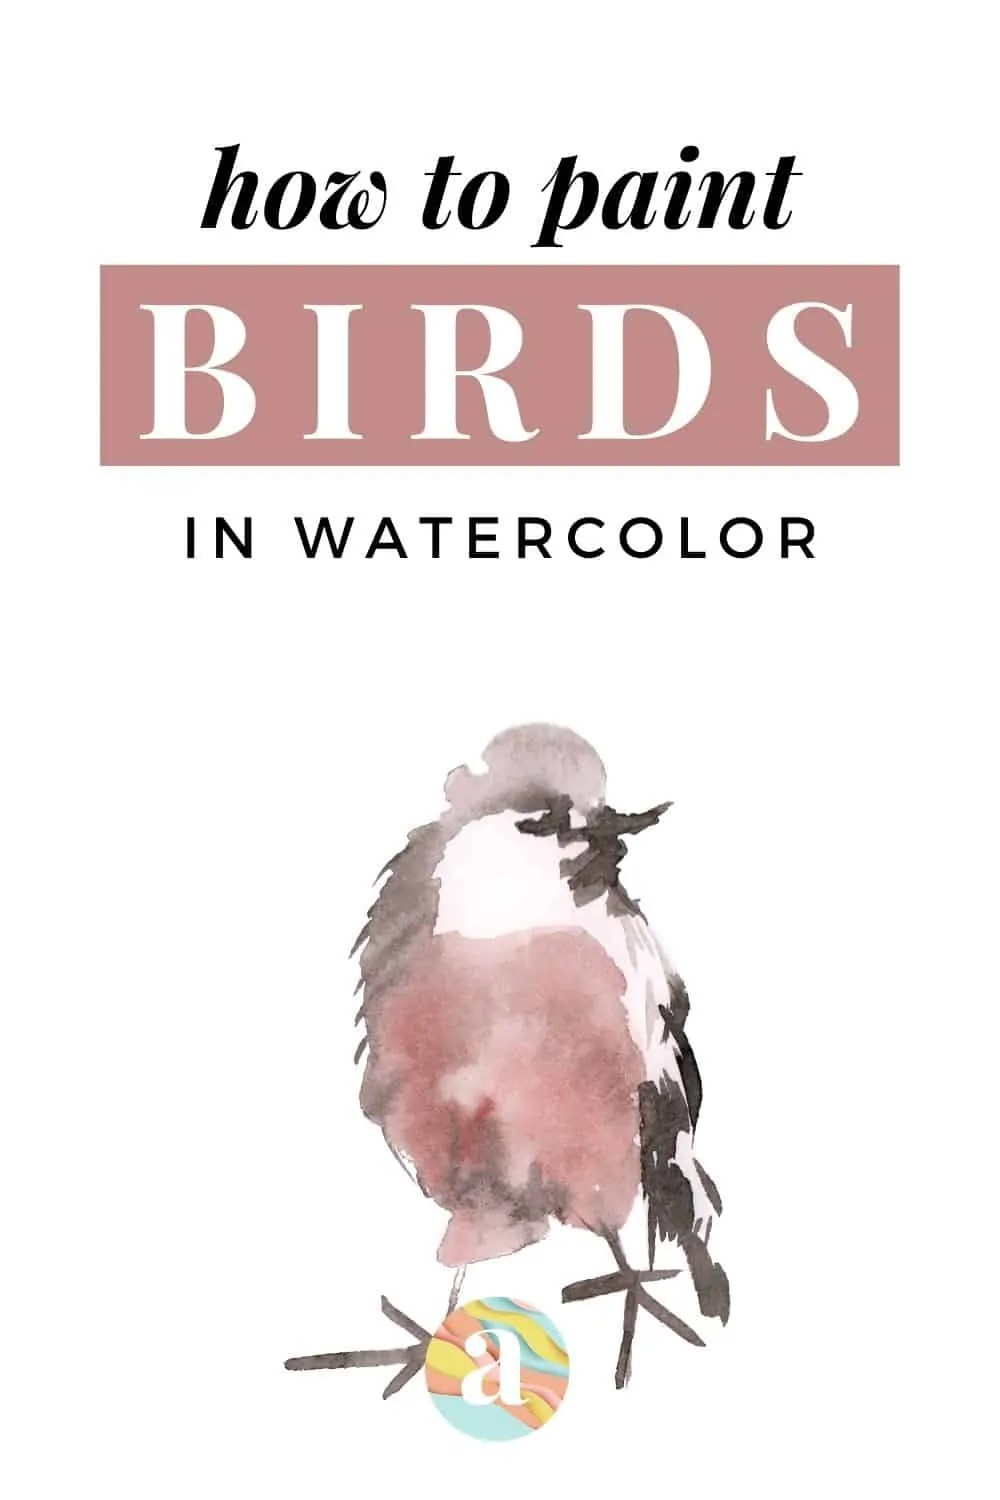 10 Ideas for Your Next Watercolor Painting 7